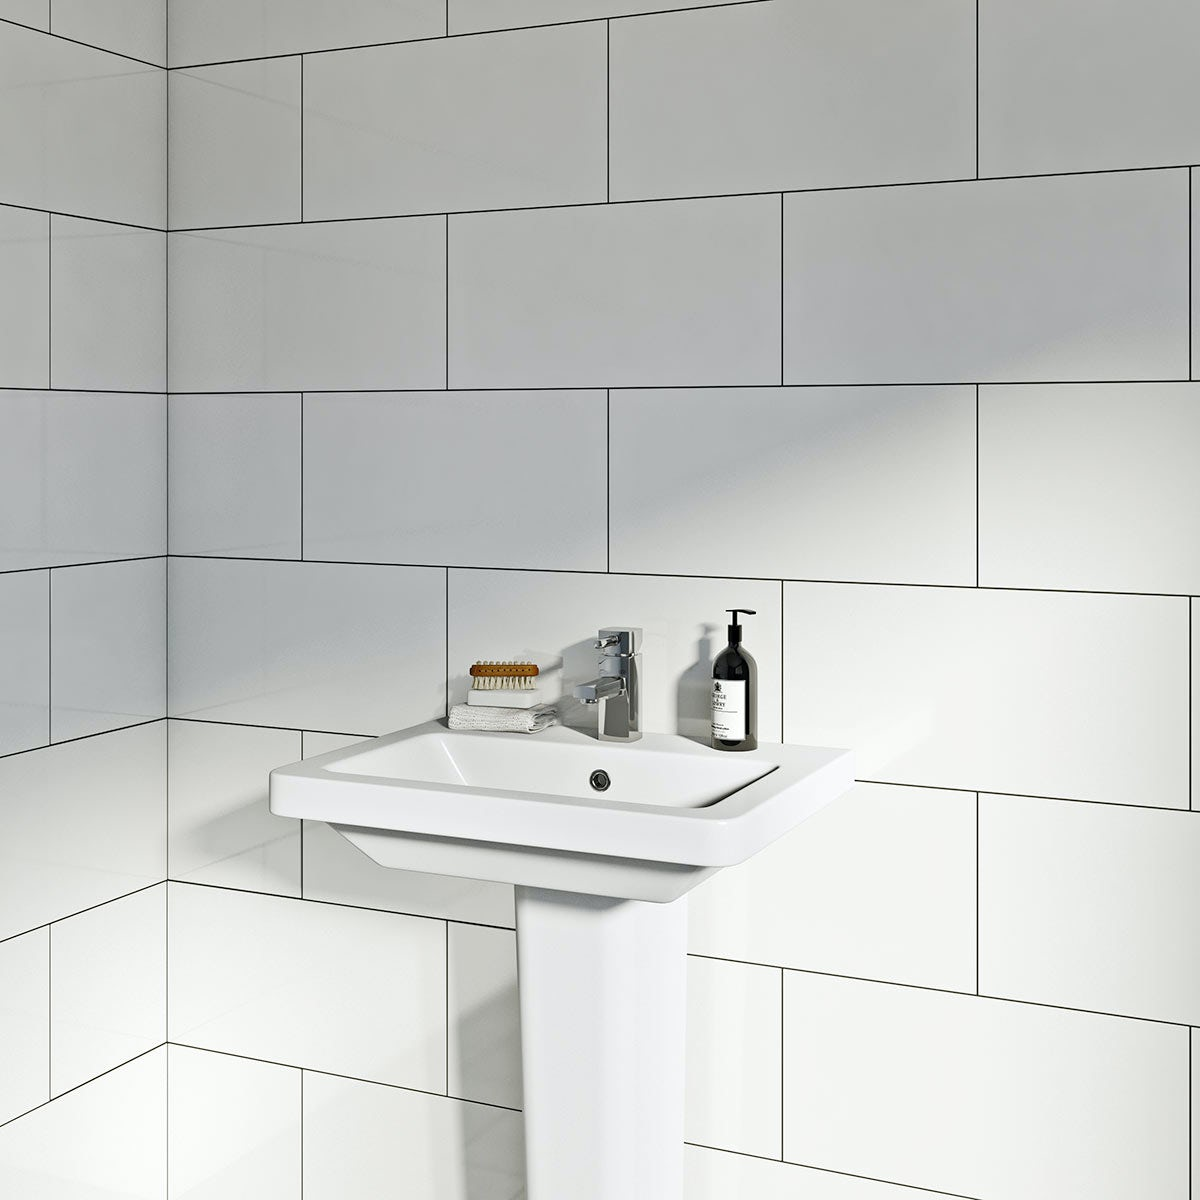 British Ceramic Tile Pure white gloss tile 248mm x 498mm